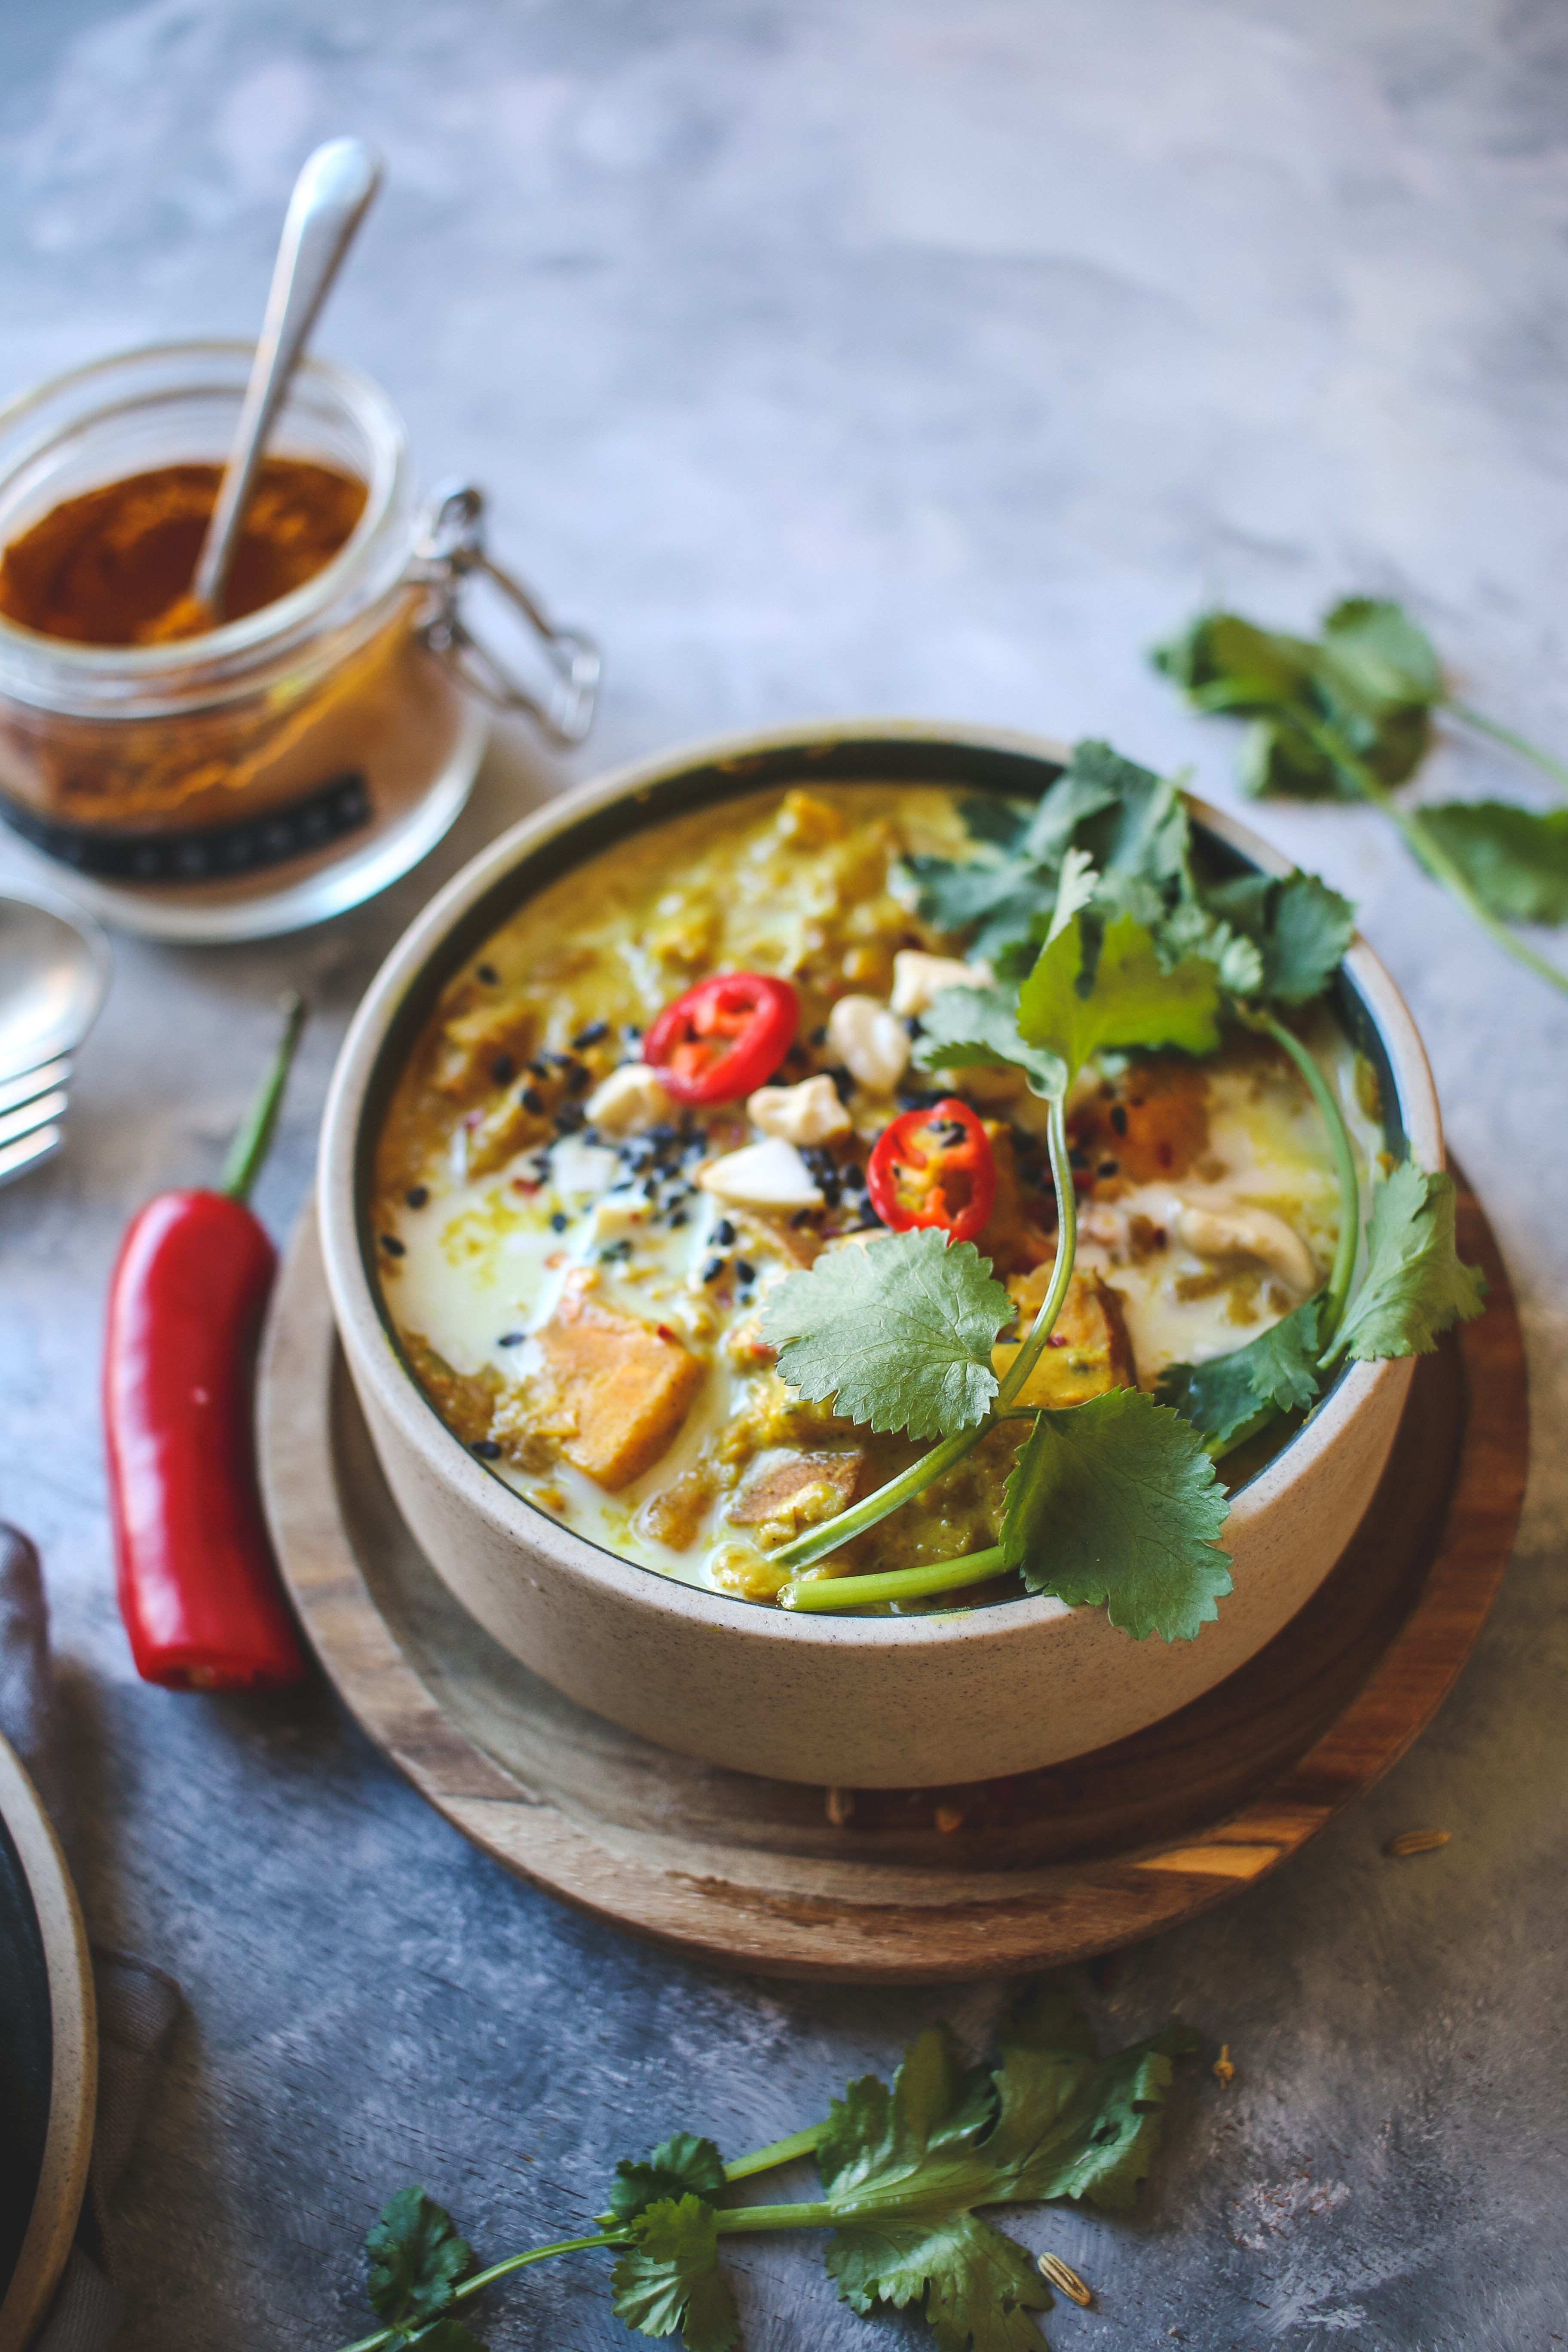 vegan sweet potato and peanut dal recipe